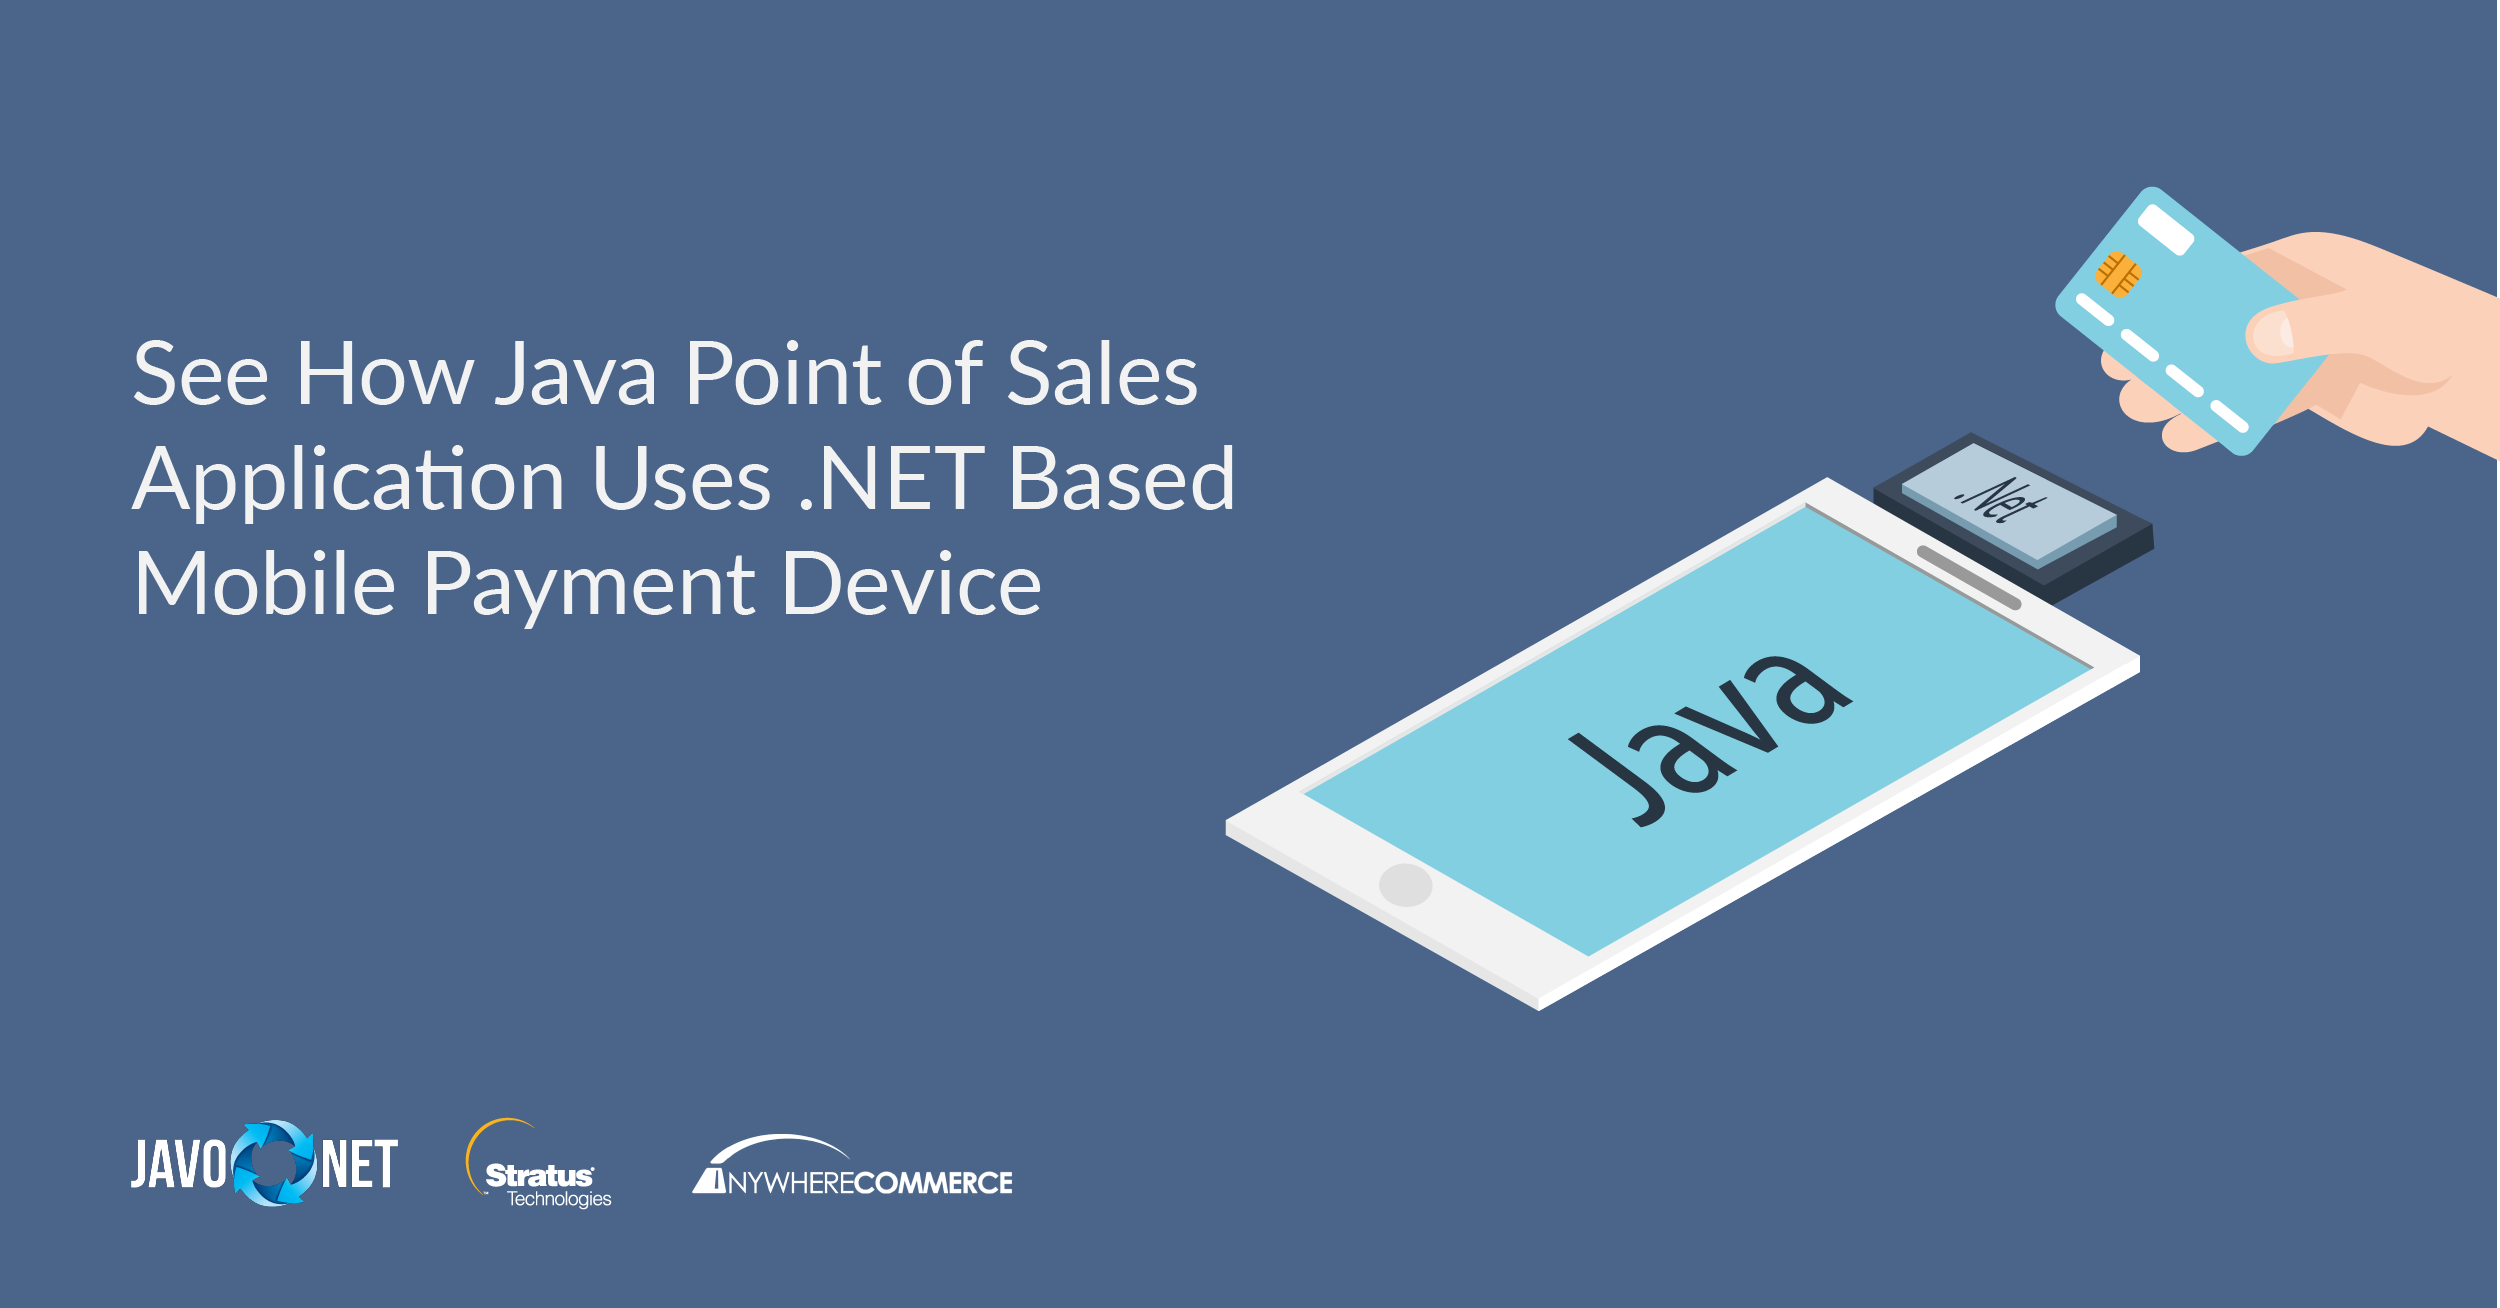 See How Java Point Of Sales Application Uses .NET Based Mobile Payment Device